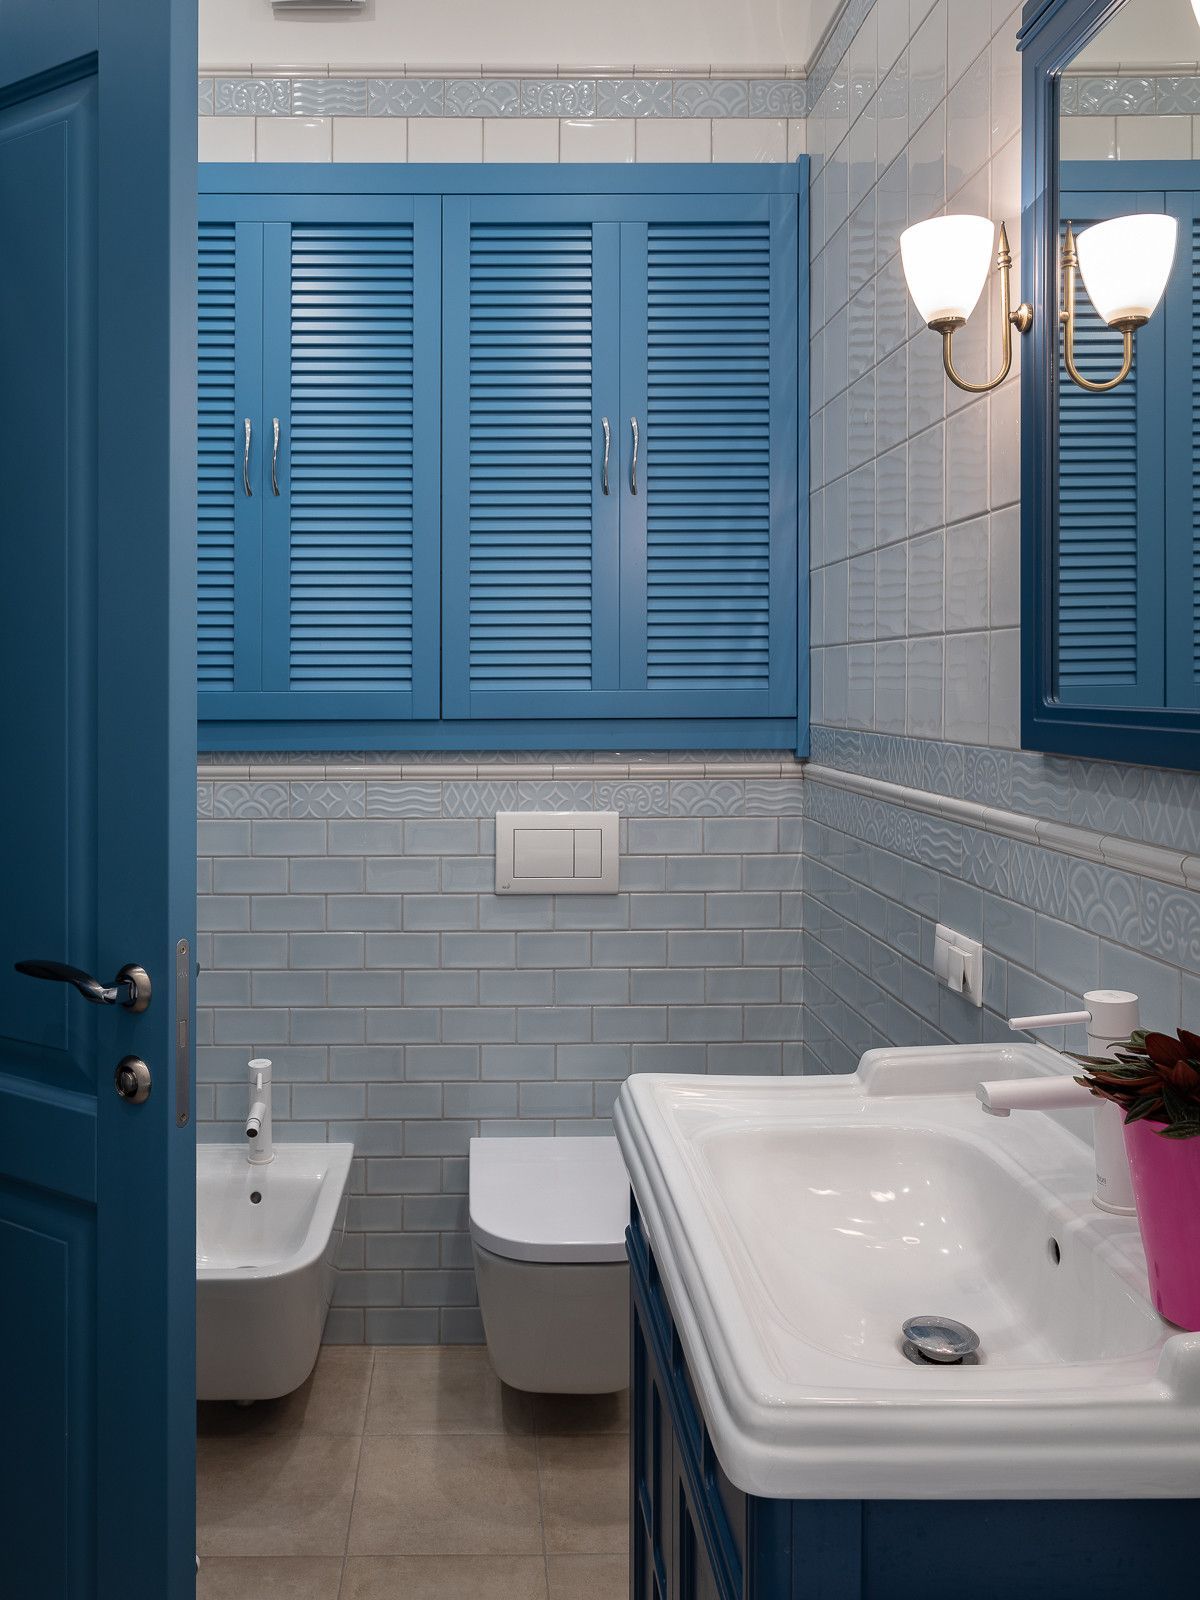 Door, window shutters and vanity bring blue to this small traditional bathroom